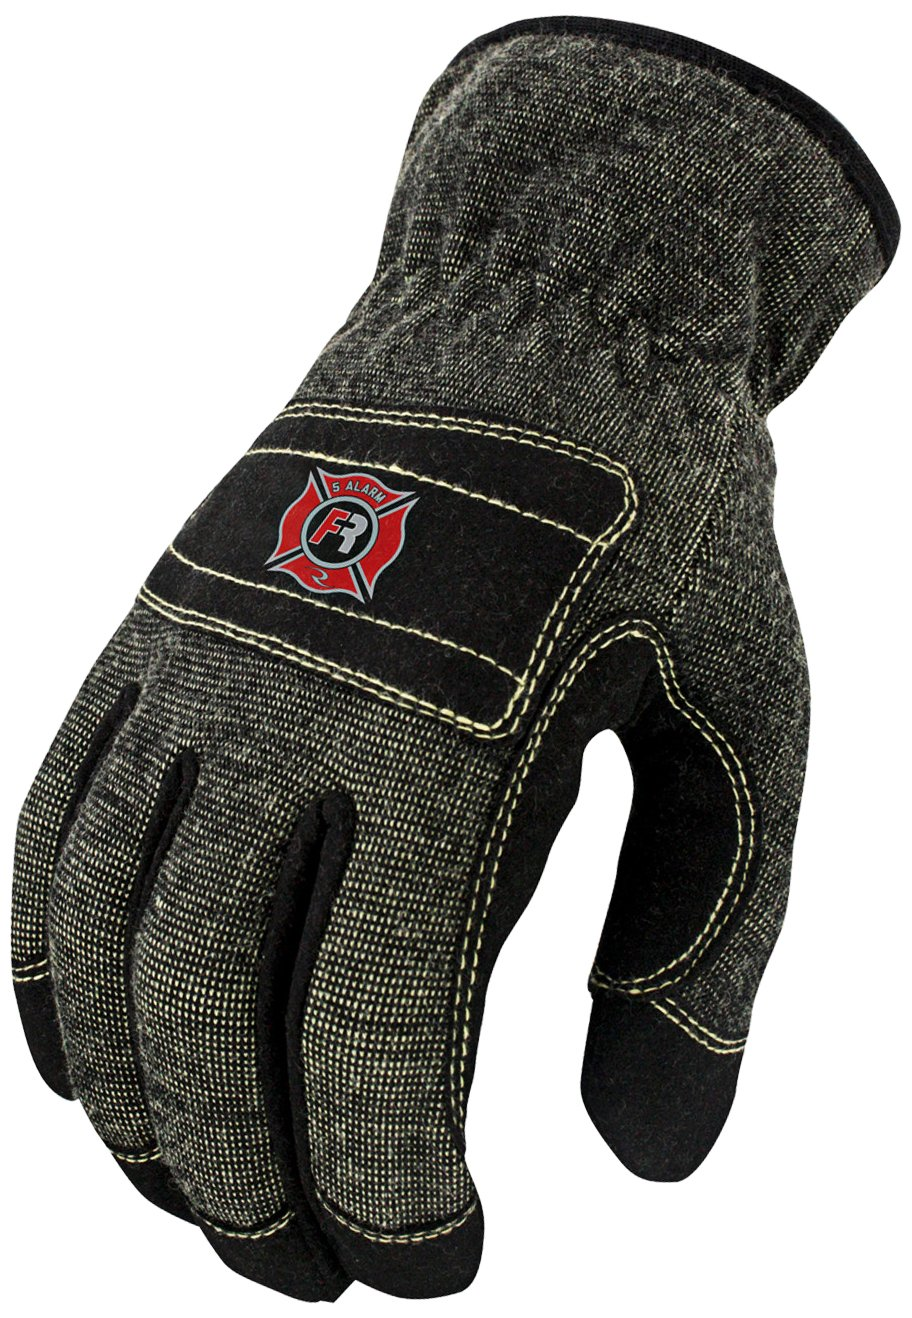 FR-RWG700M Radians Fr-Rwg700 Fr Work Glove Medium Radians Inc